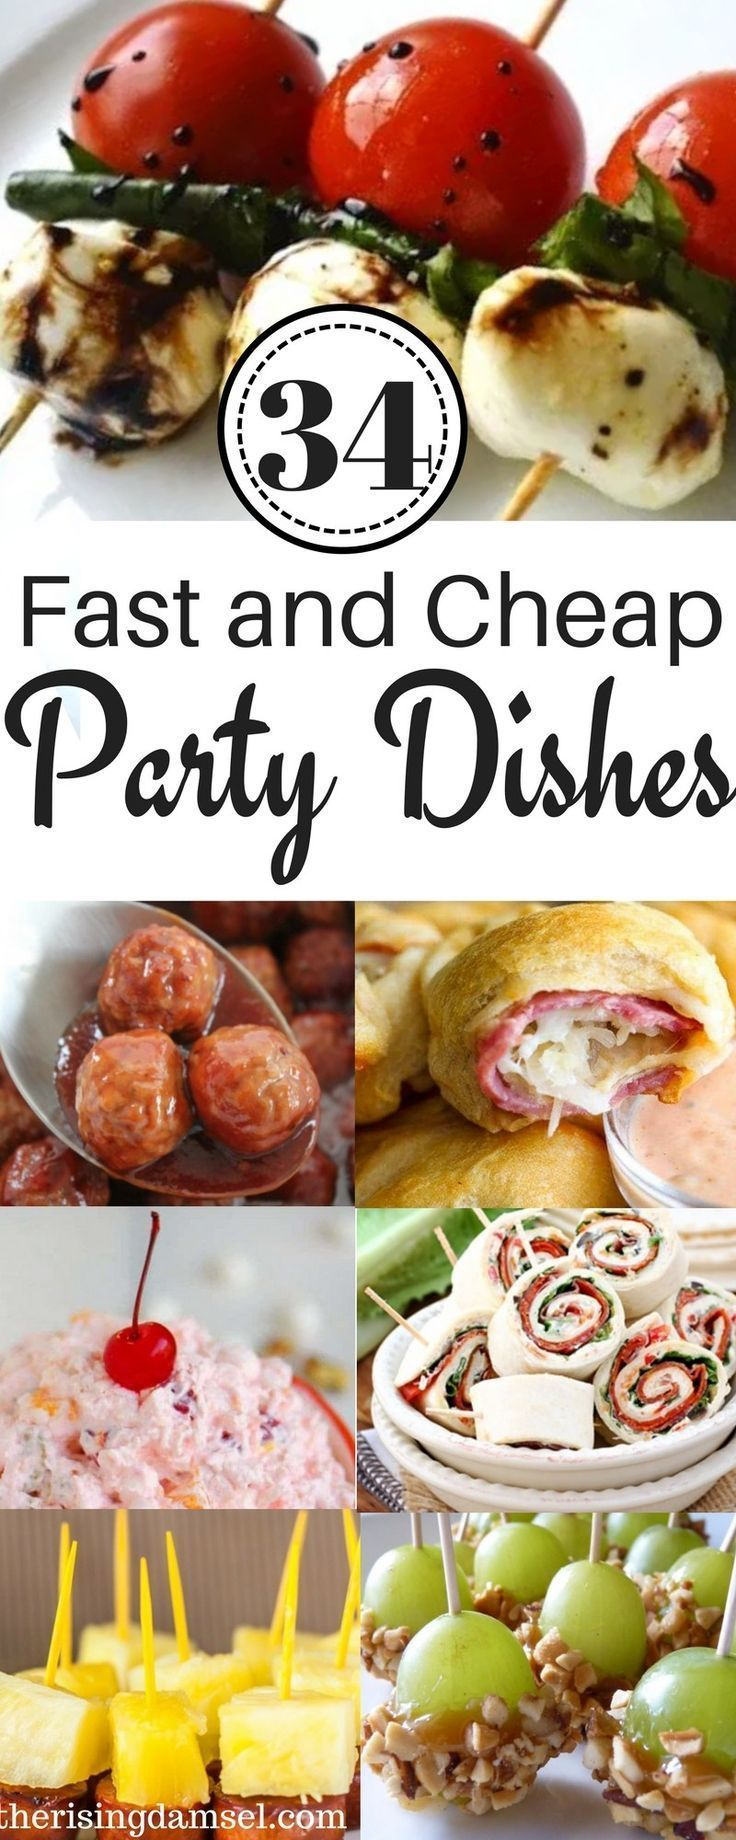 Easy Appetizer Recipes to Impress! 34 Fast Party Pleasing Dishes